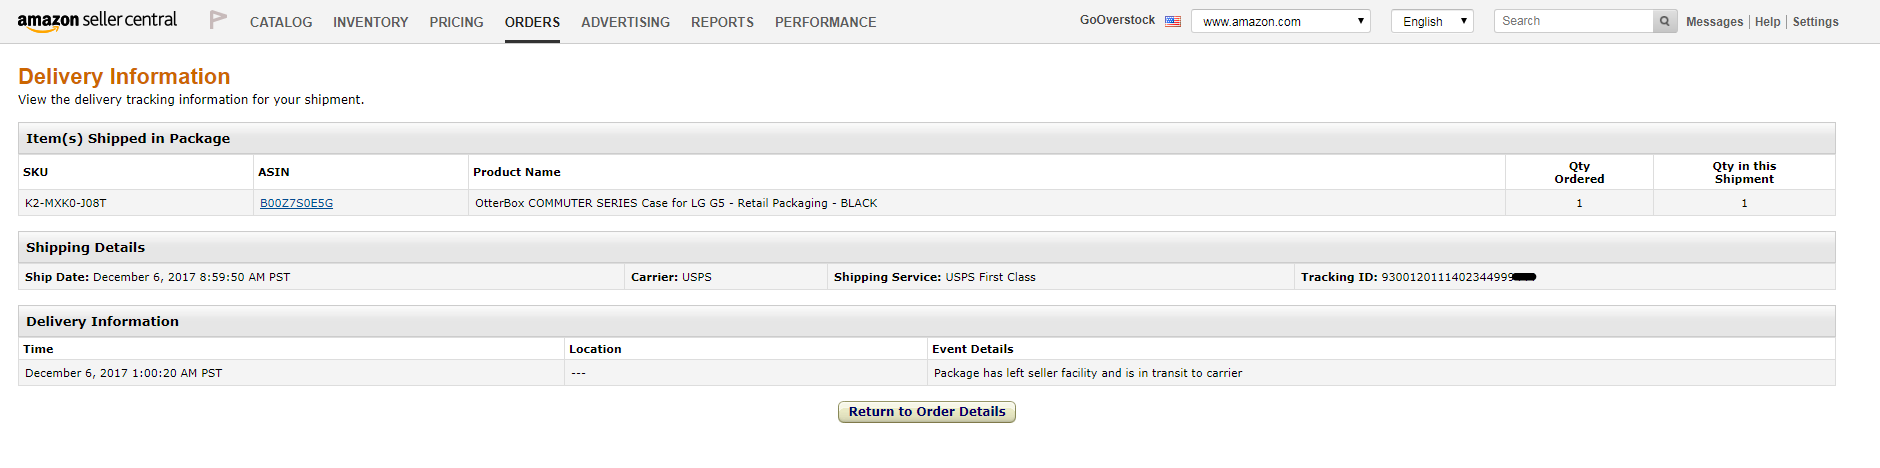 Customer claiming INR from order placed on 5/8 - USPS tracking for